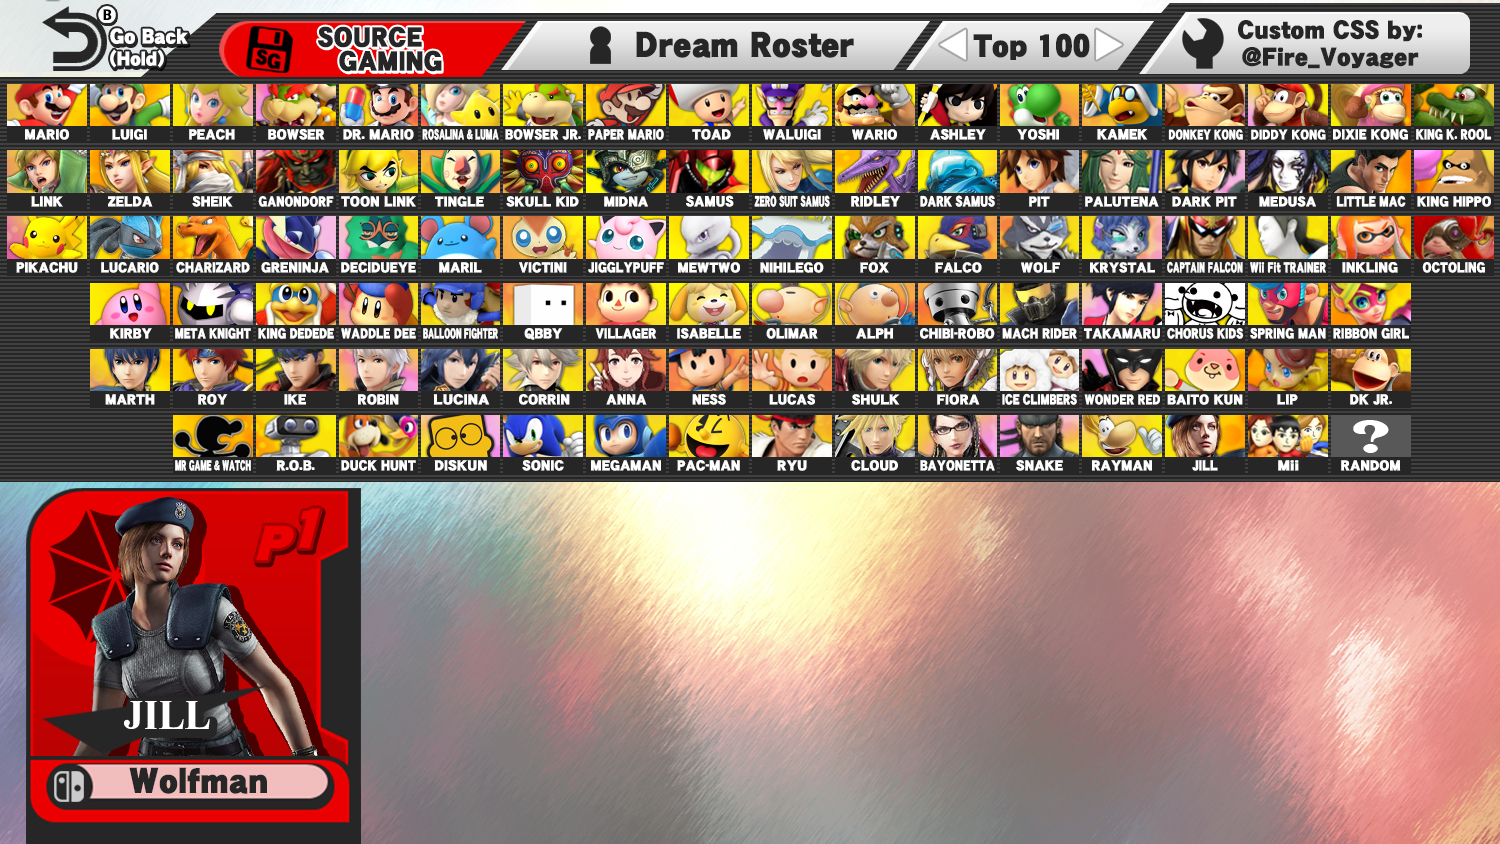 Dream Roster Smash Bros With 100 Fighters Source Gaming